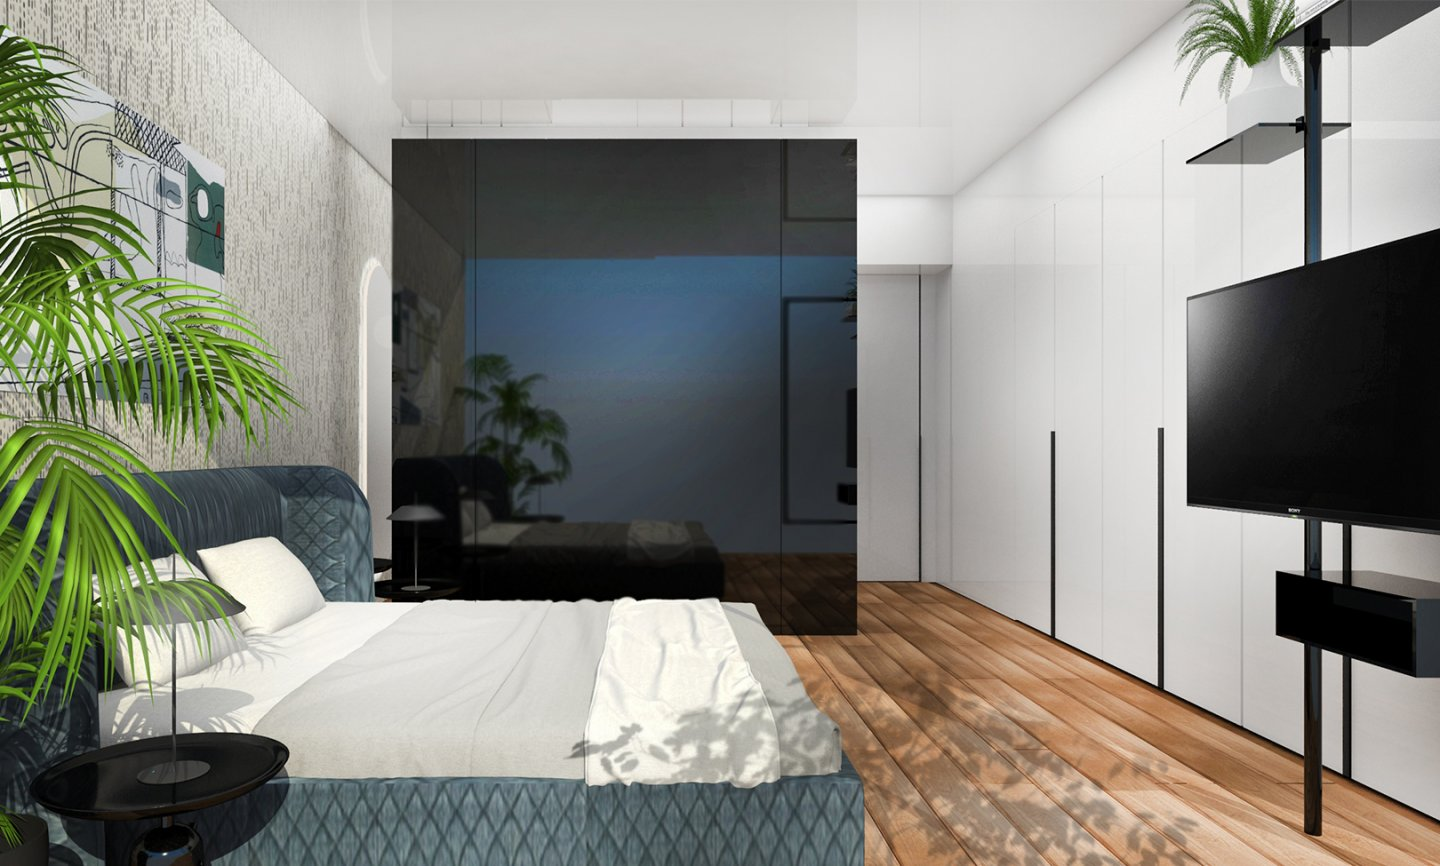 T.J Apartment  - project overview image